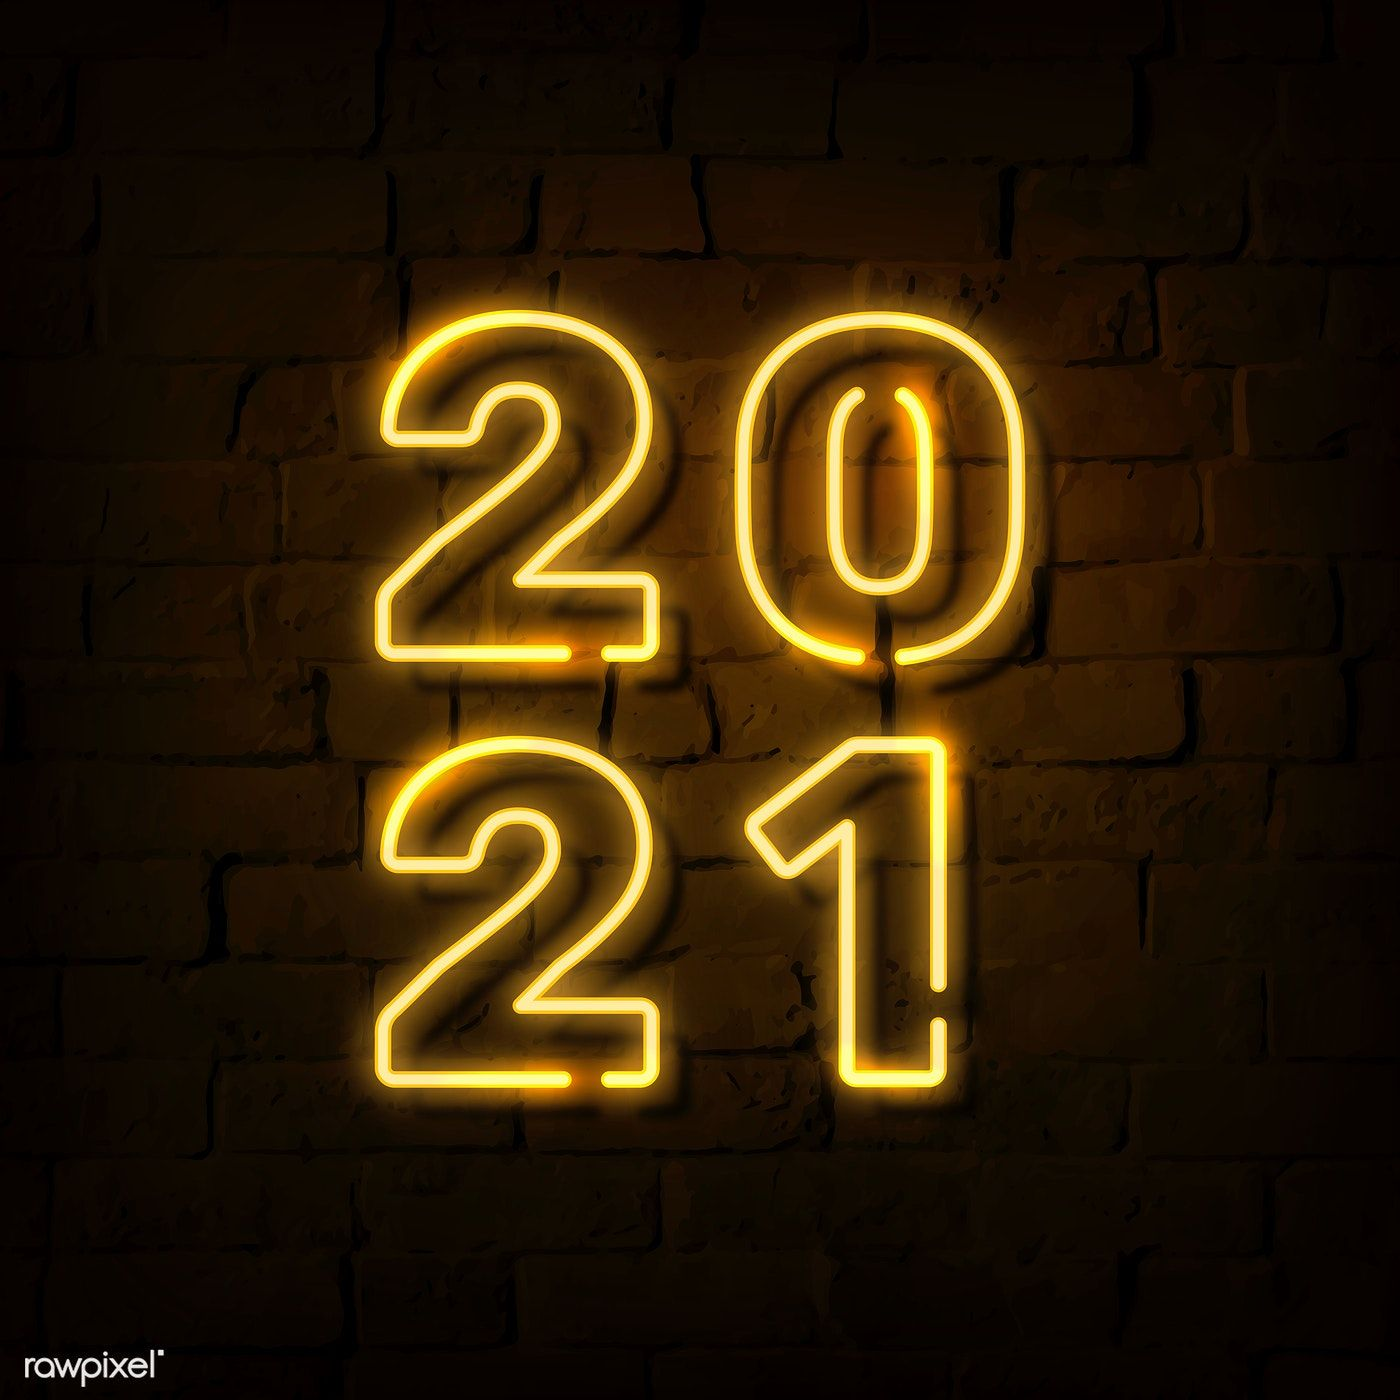 Download premium vector of Bright neon yellow 2021 social